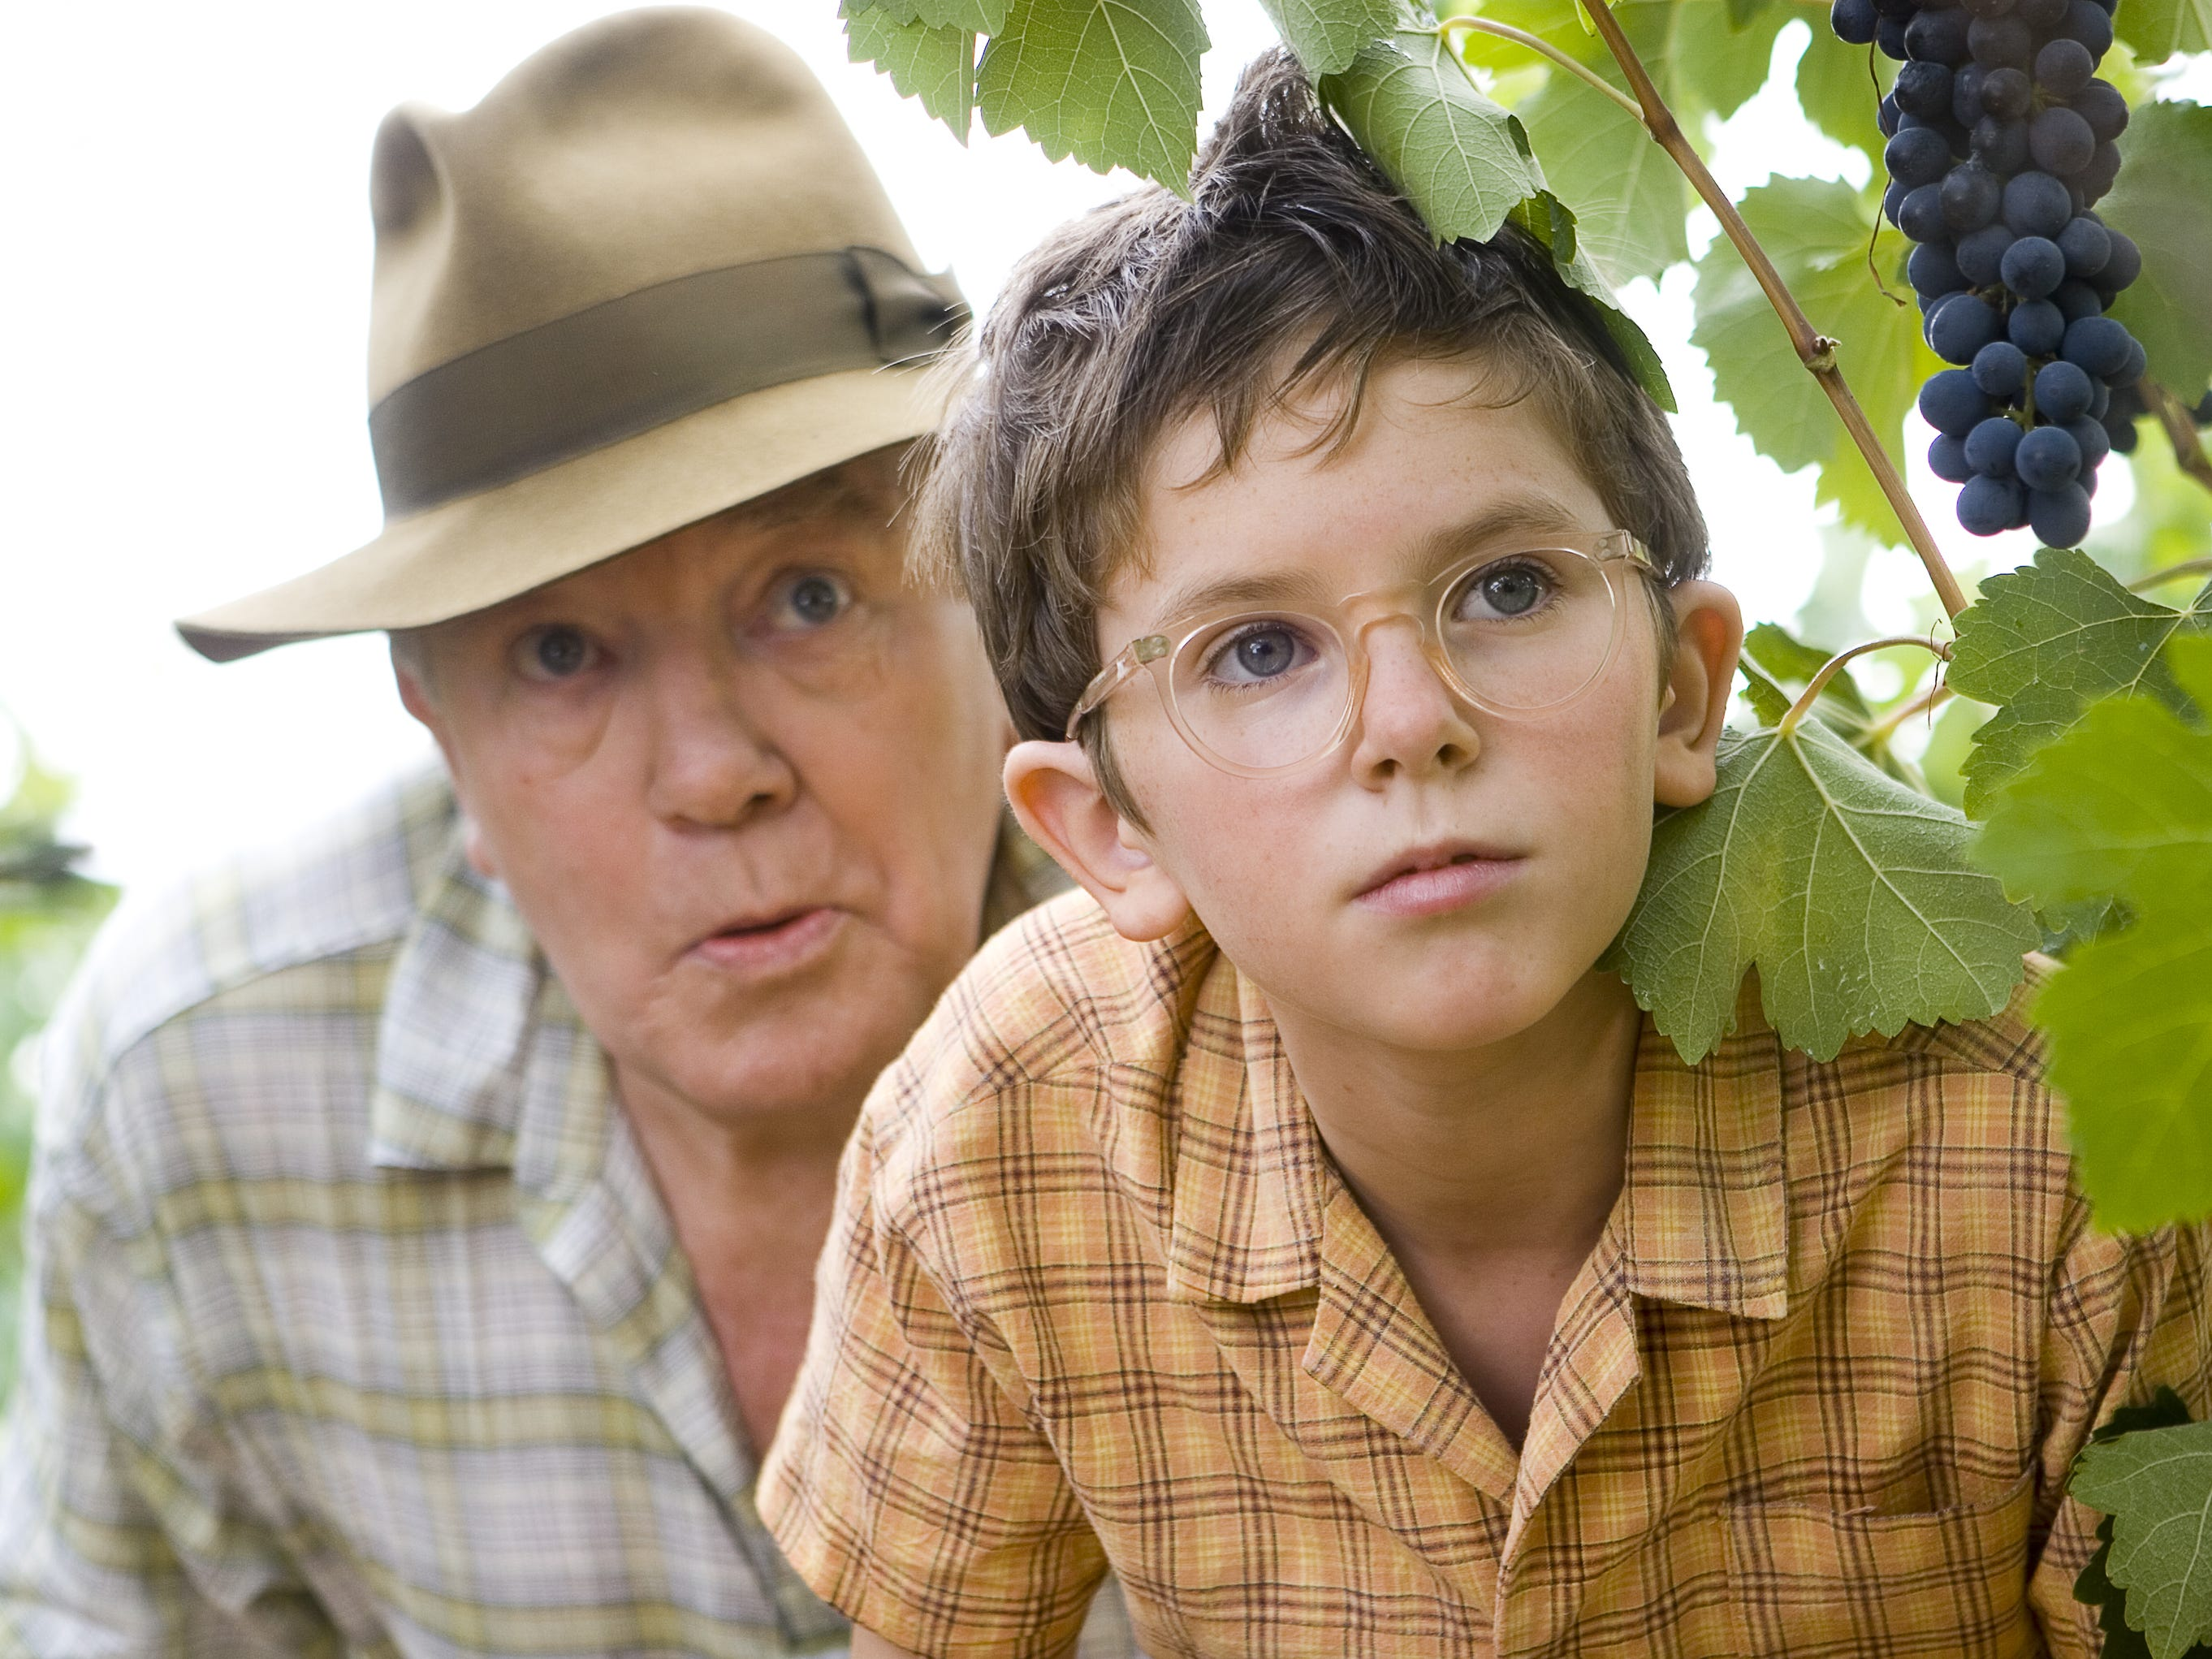 Albert Finney and Freddie Highmore in a scene from the motion picture A Good Year, 2006.